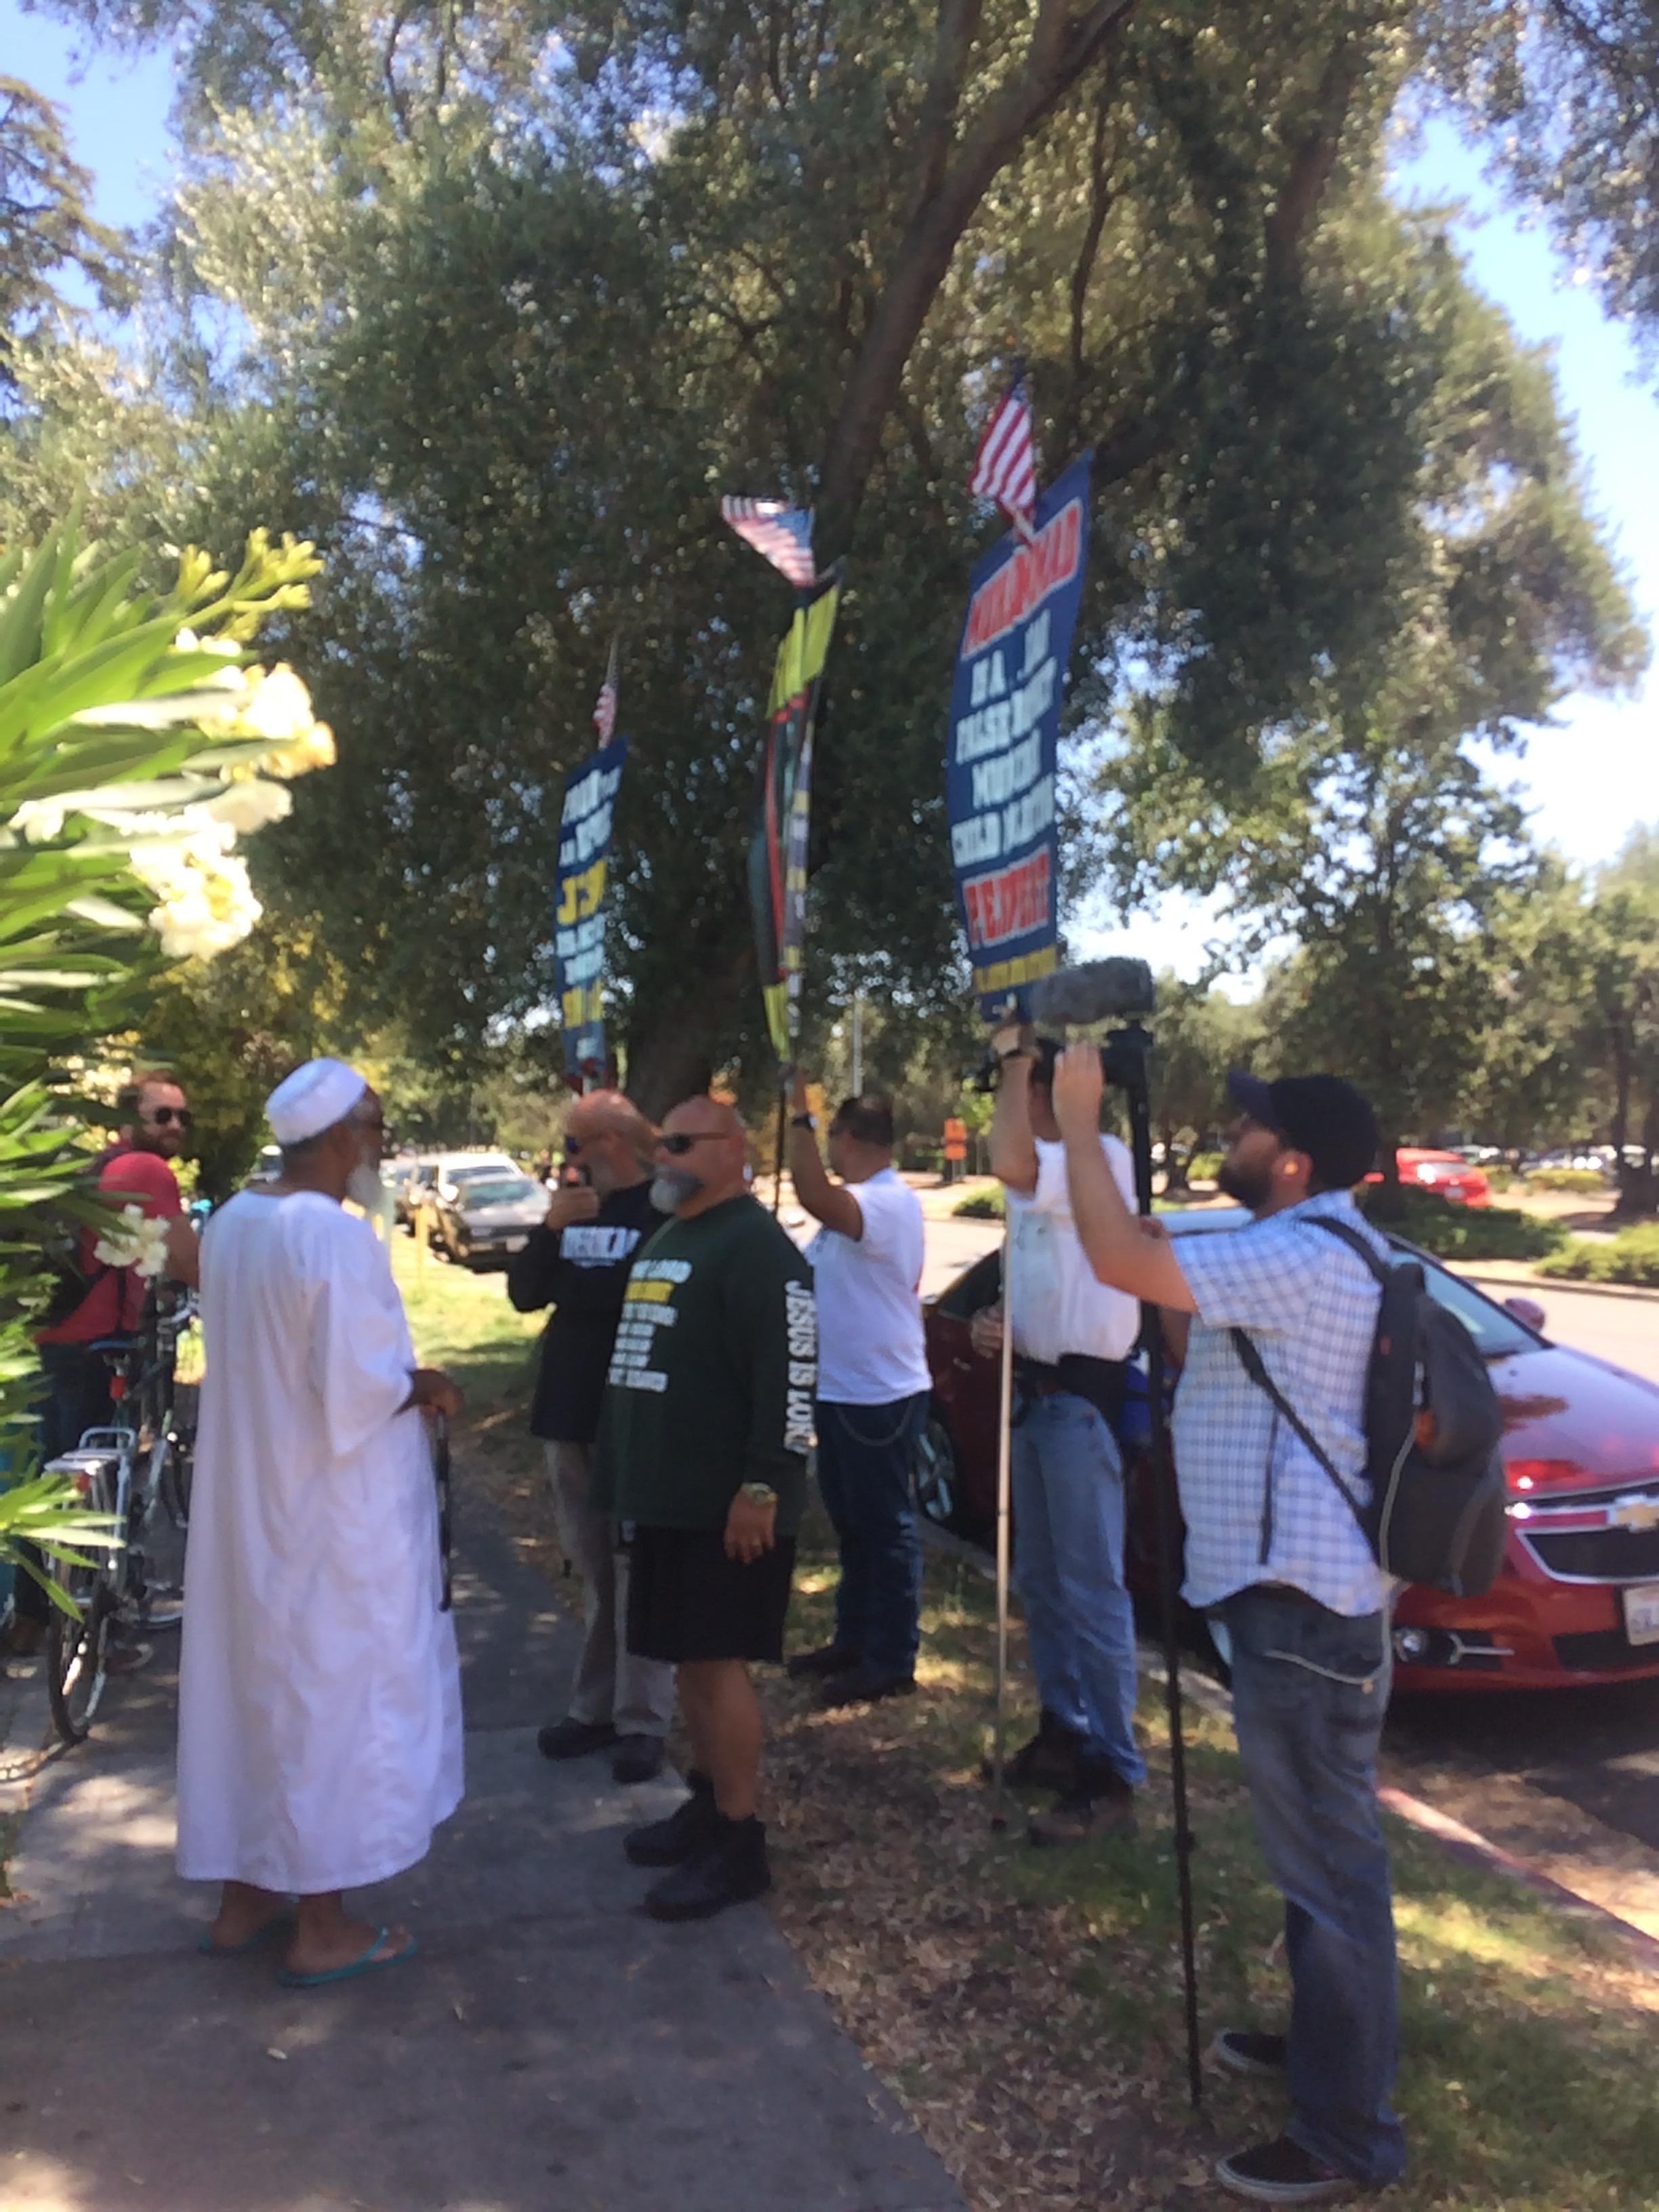 Protest outside Davis Islamic Center